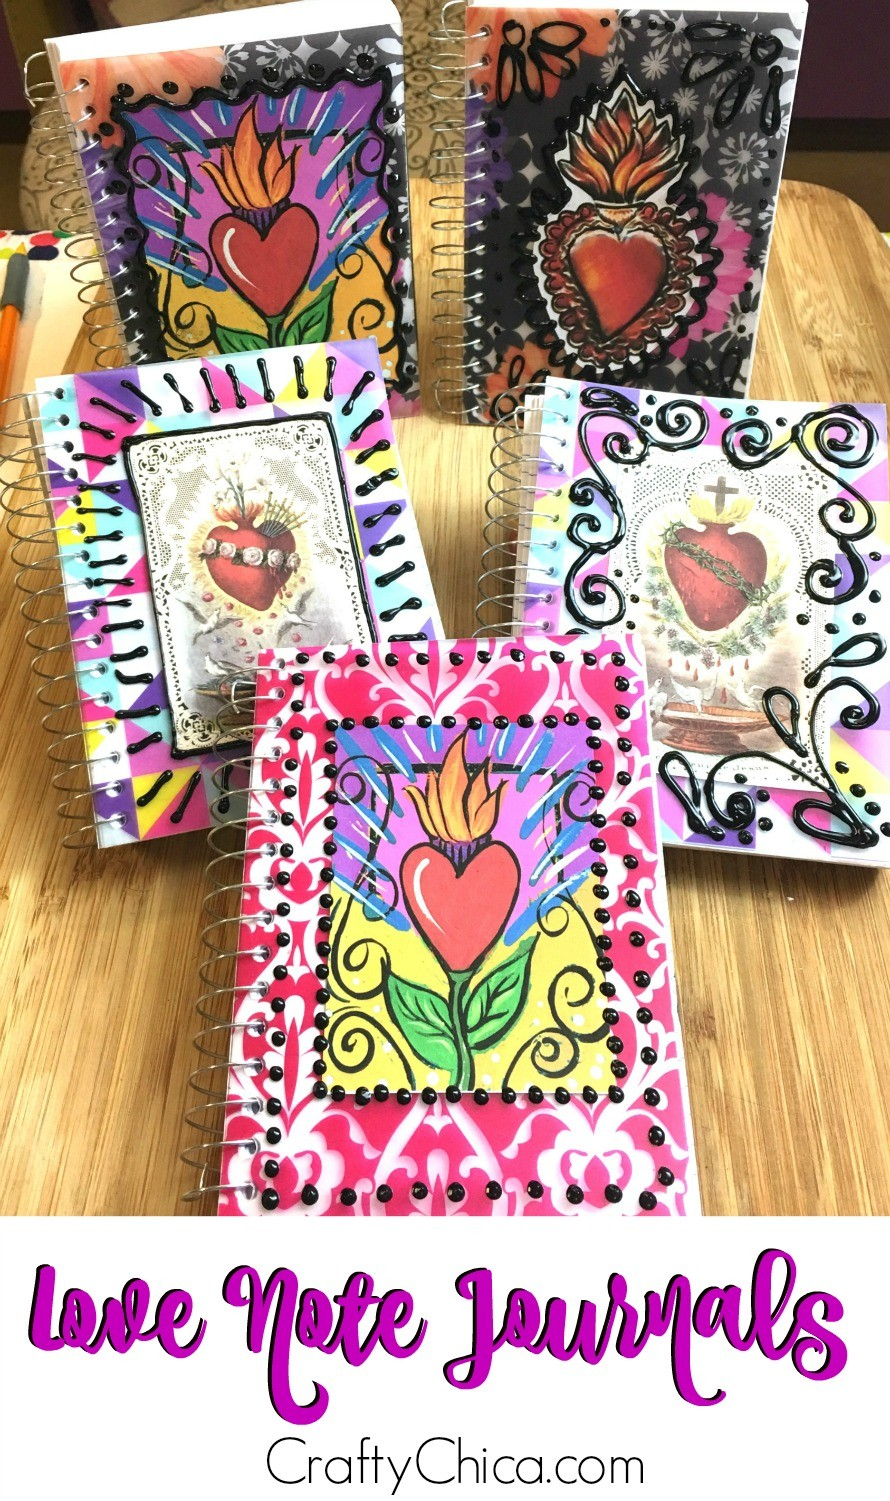 Use notebooks from the dollar store to make love note journals.